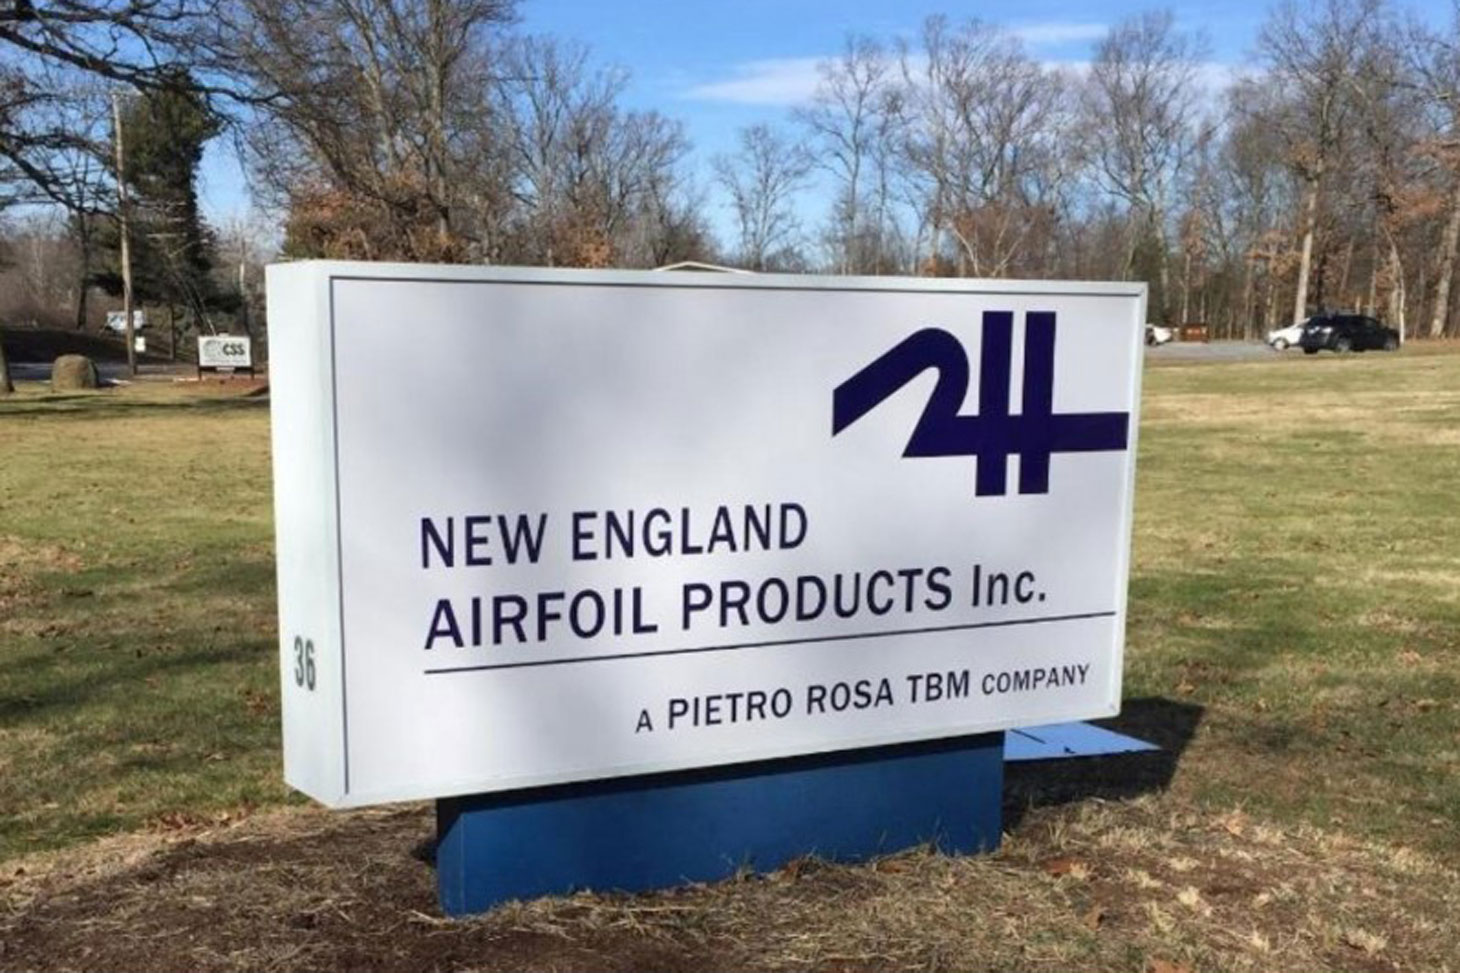 New England Airfoil Products